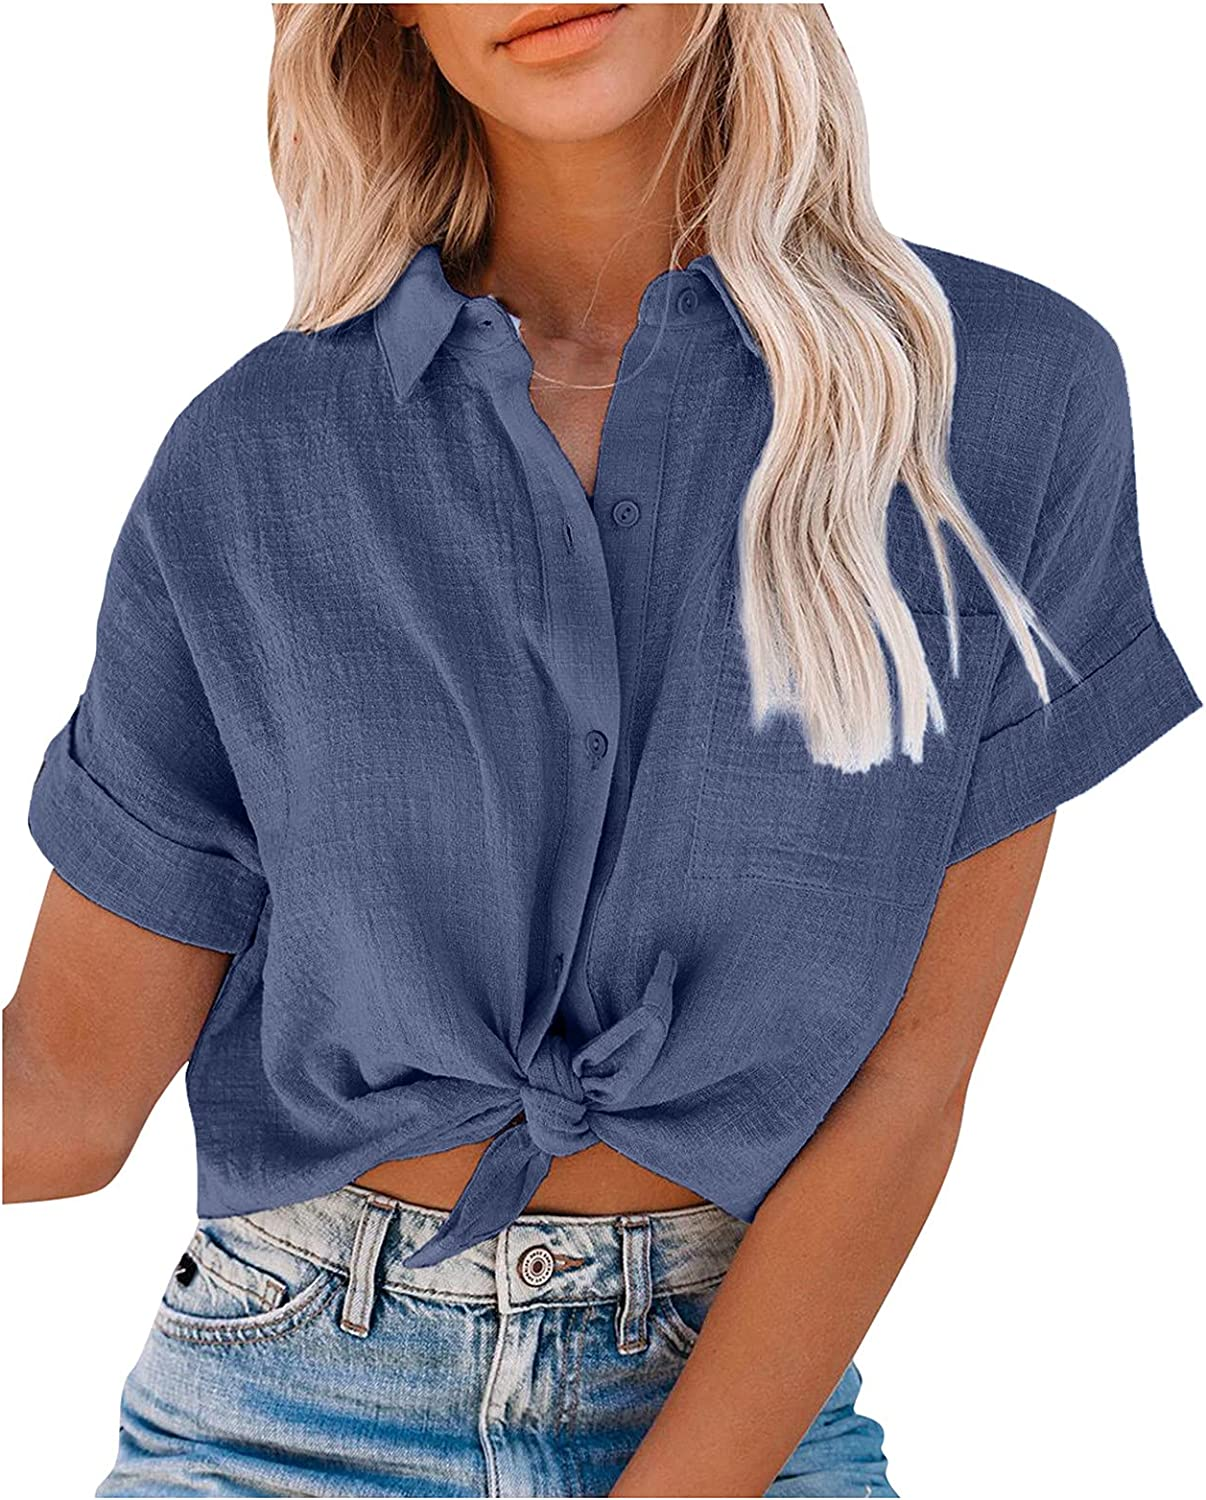 Womens Turn Down Collar Button Down Shirt Tops w/Front Pocket,Plus Size Short Sleeve Slim Blouse Tunic